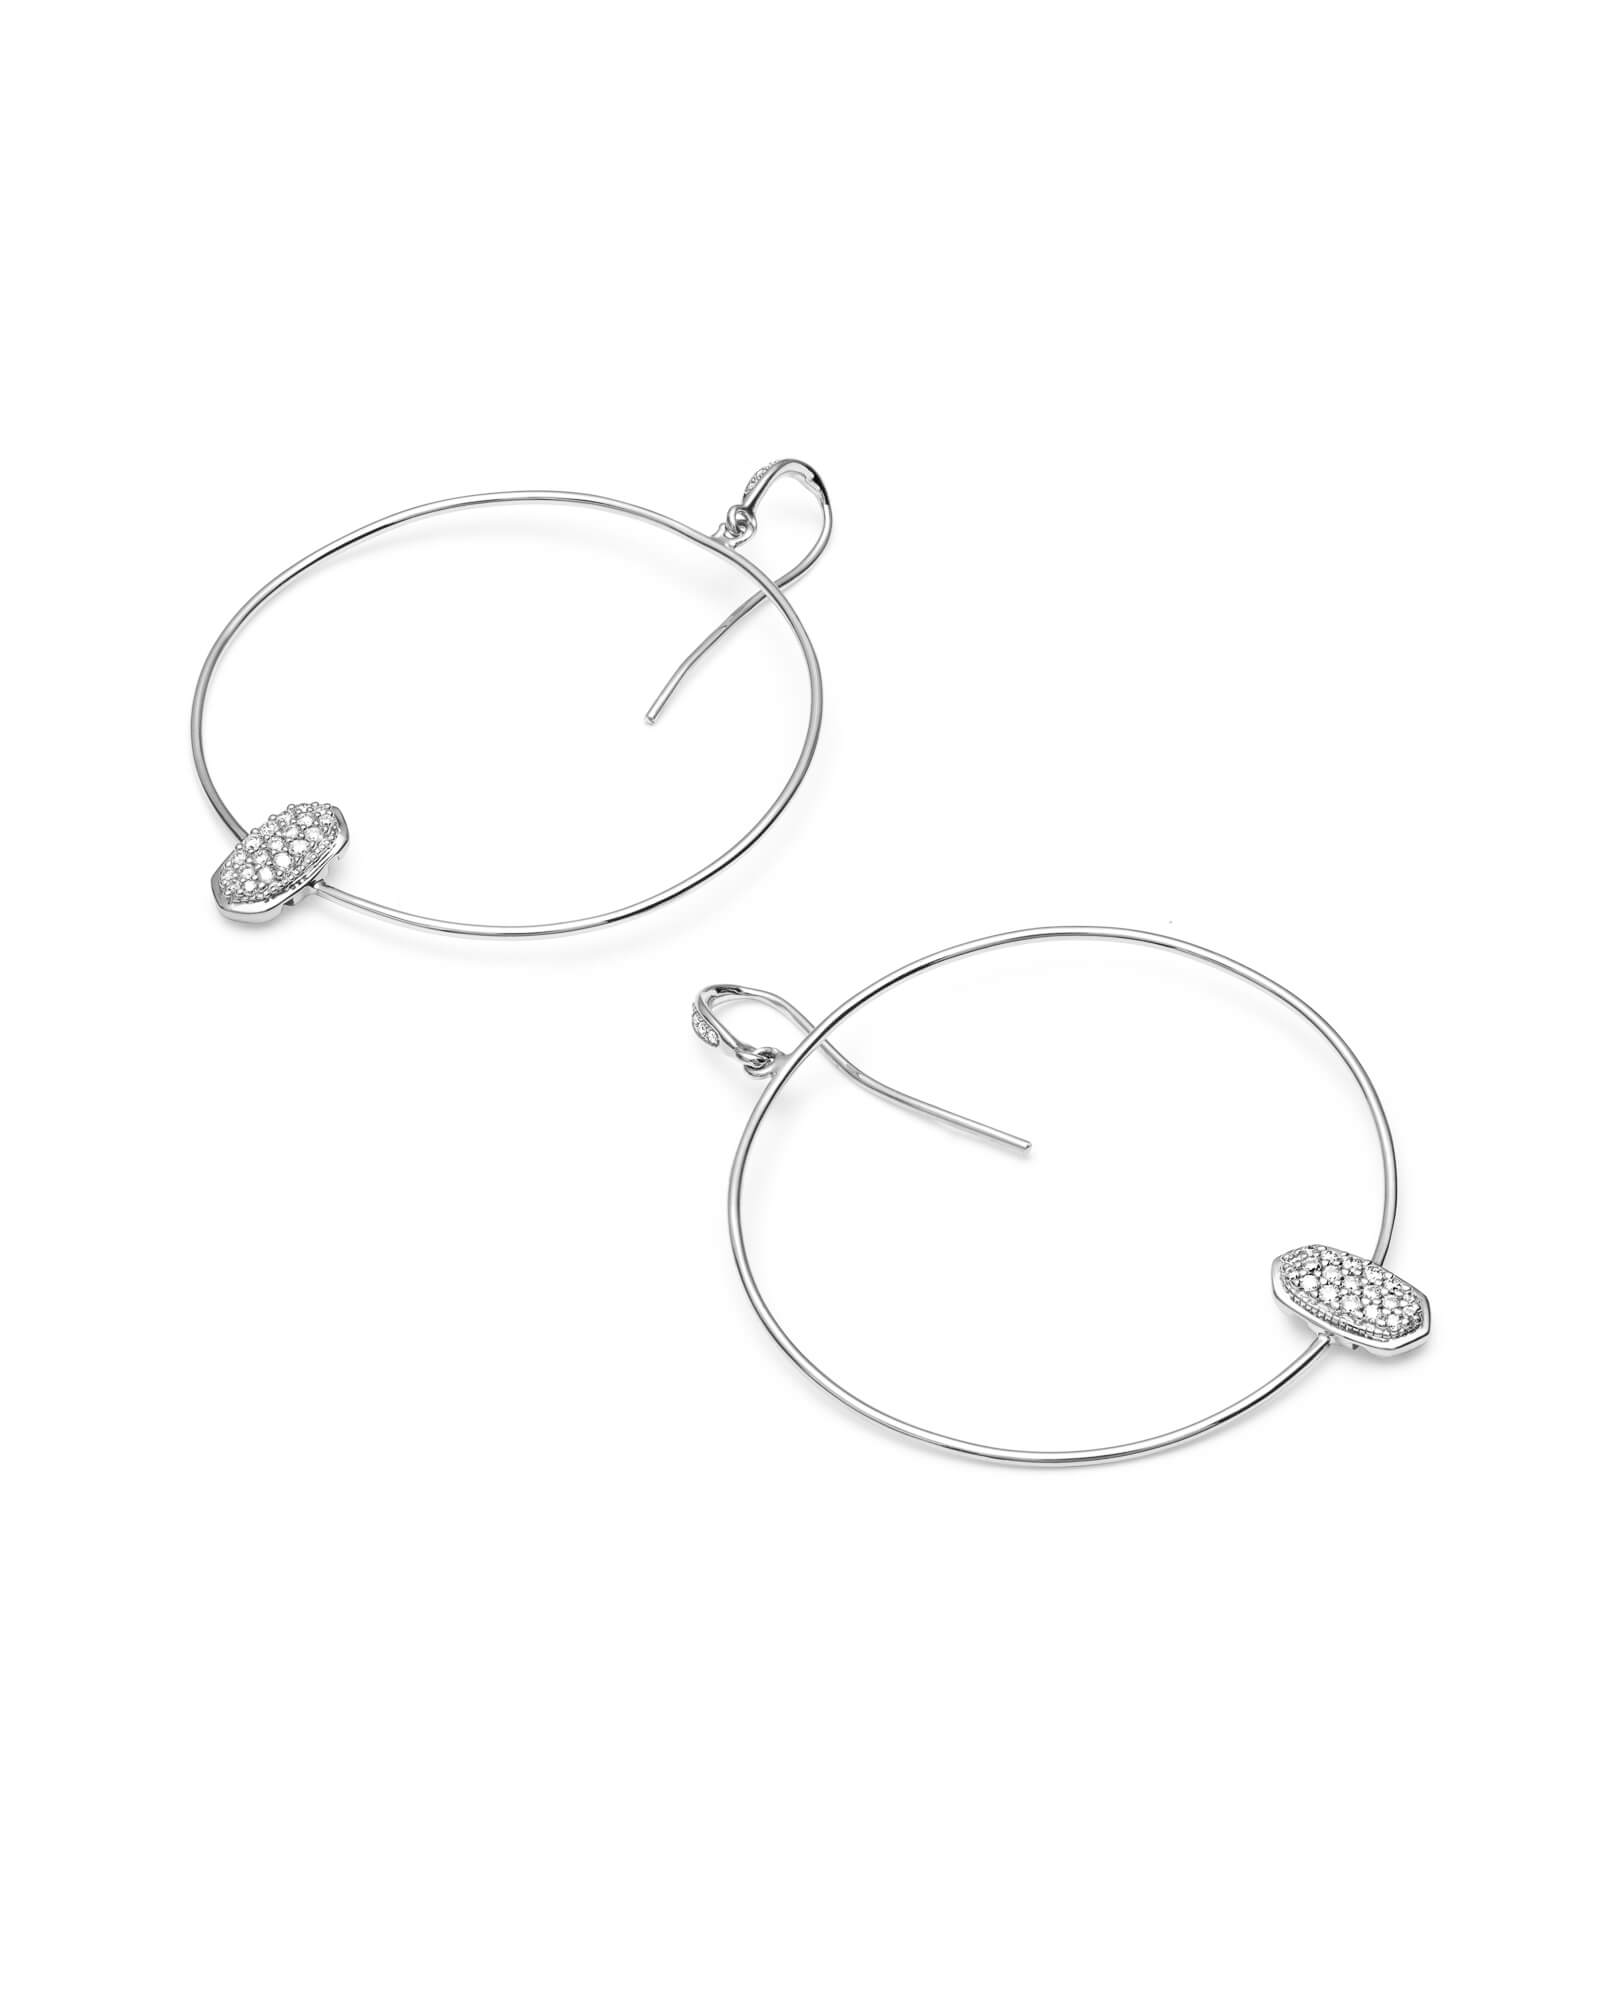 Elora 14k White Gold Hoop Earrings in White Diamond